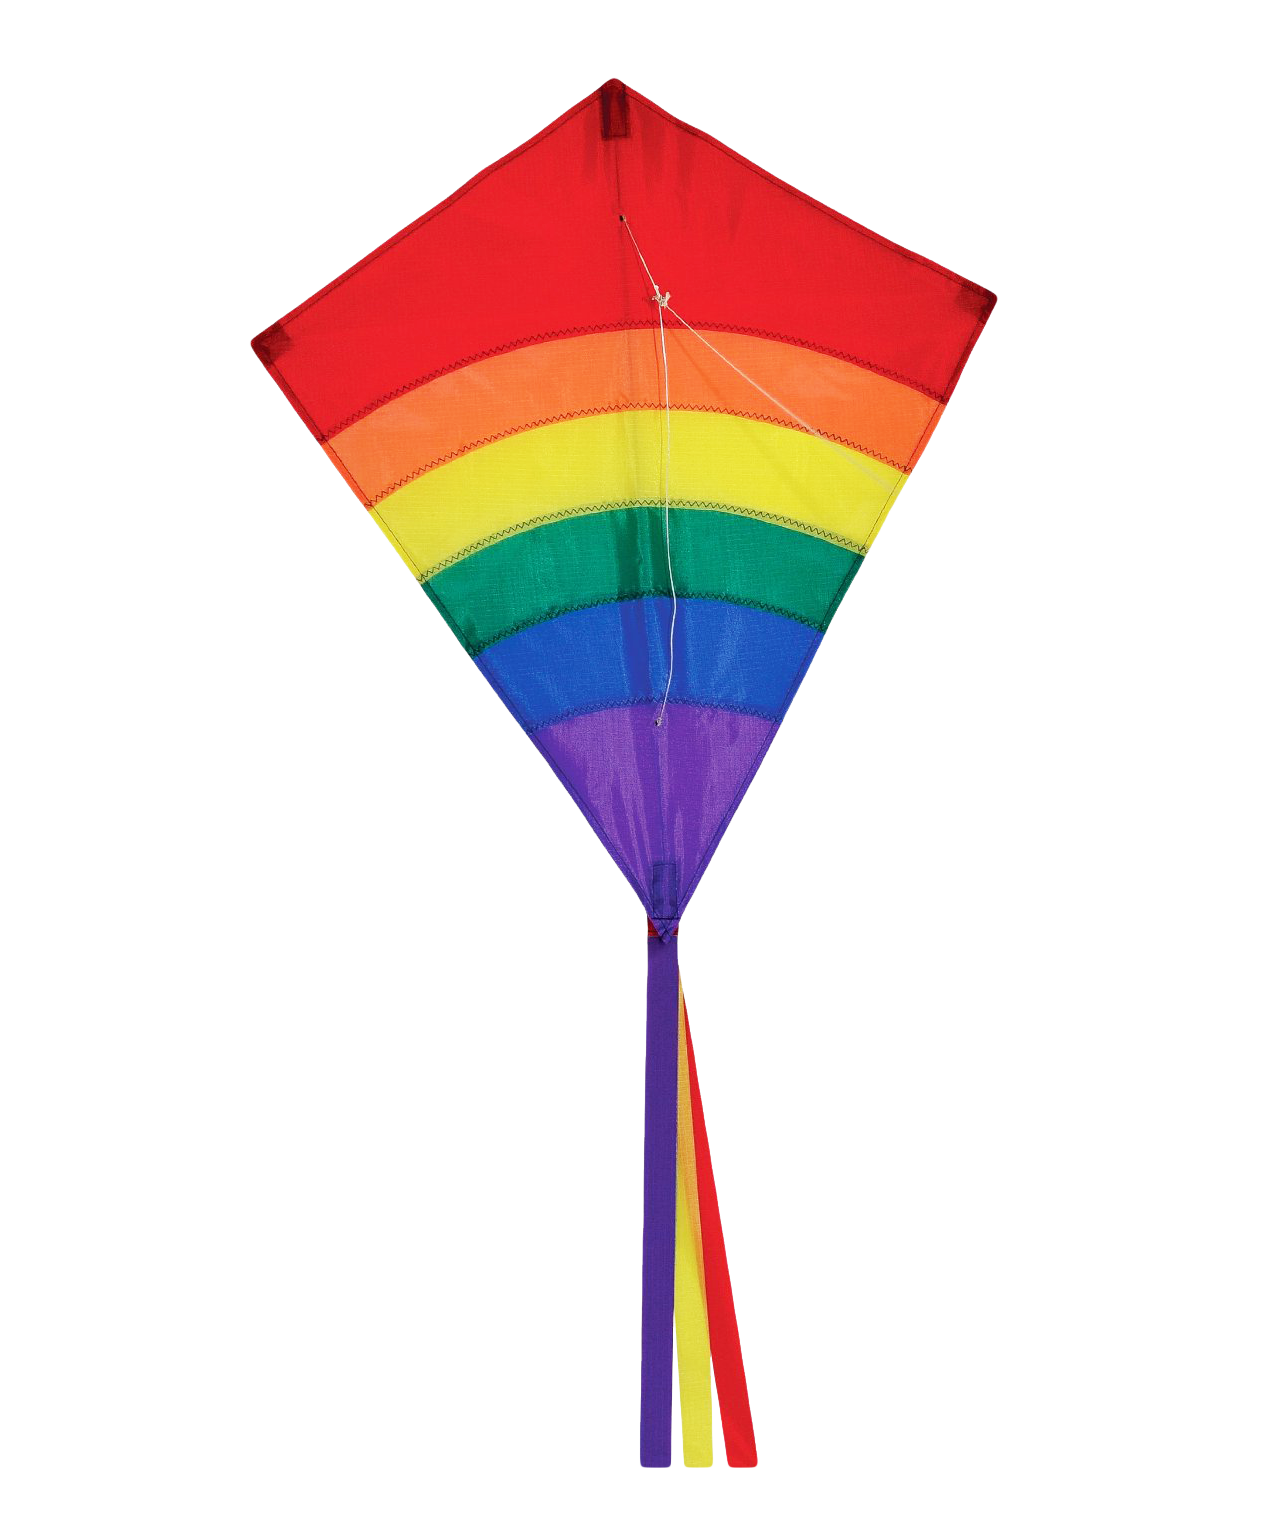 Kite PNG HD Images Transparent Kite HD Images.PNG Images..